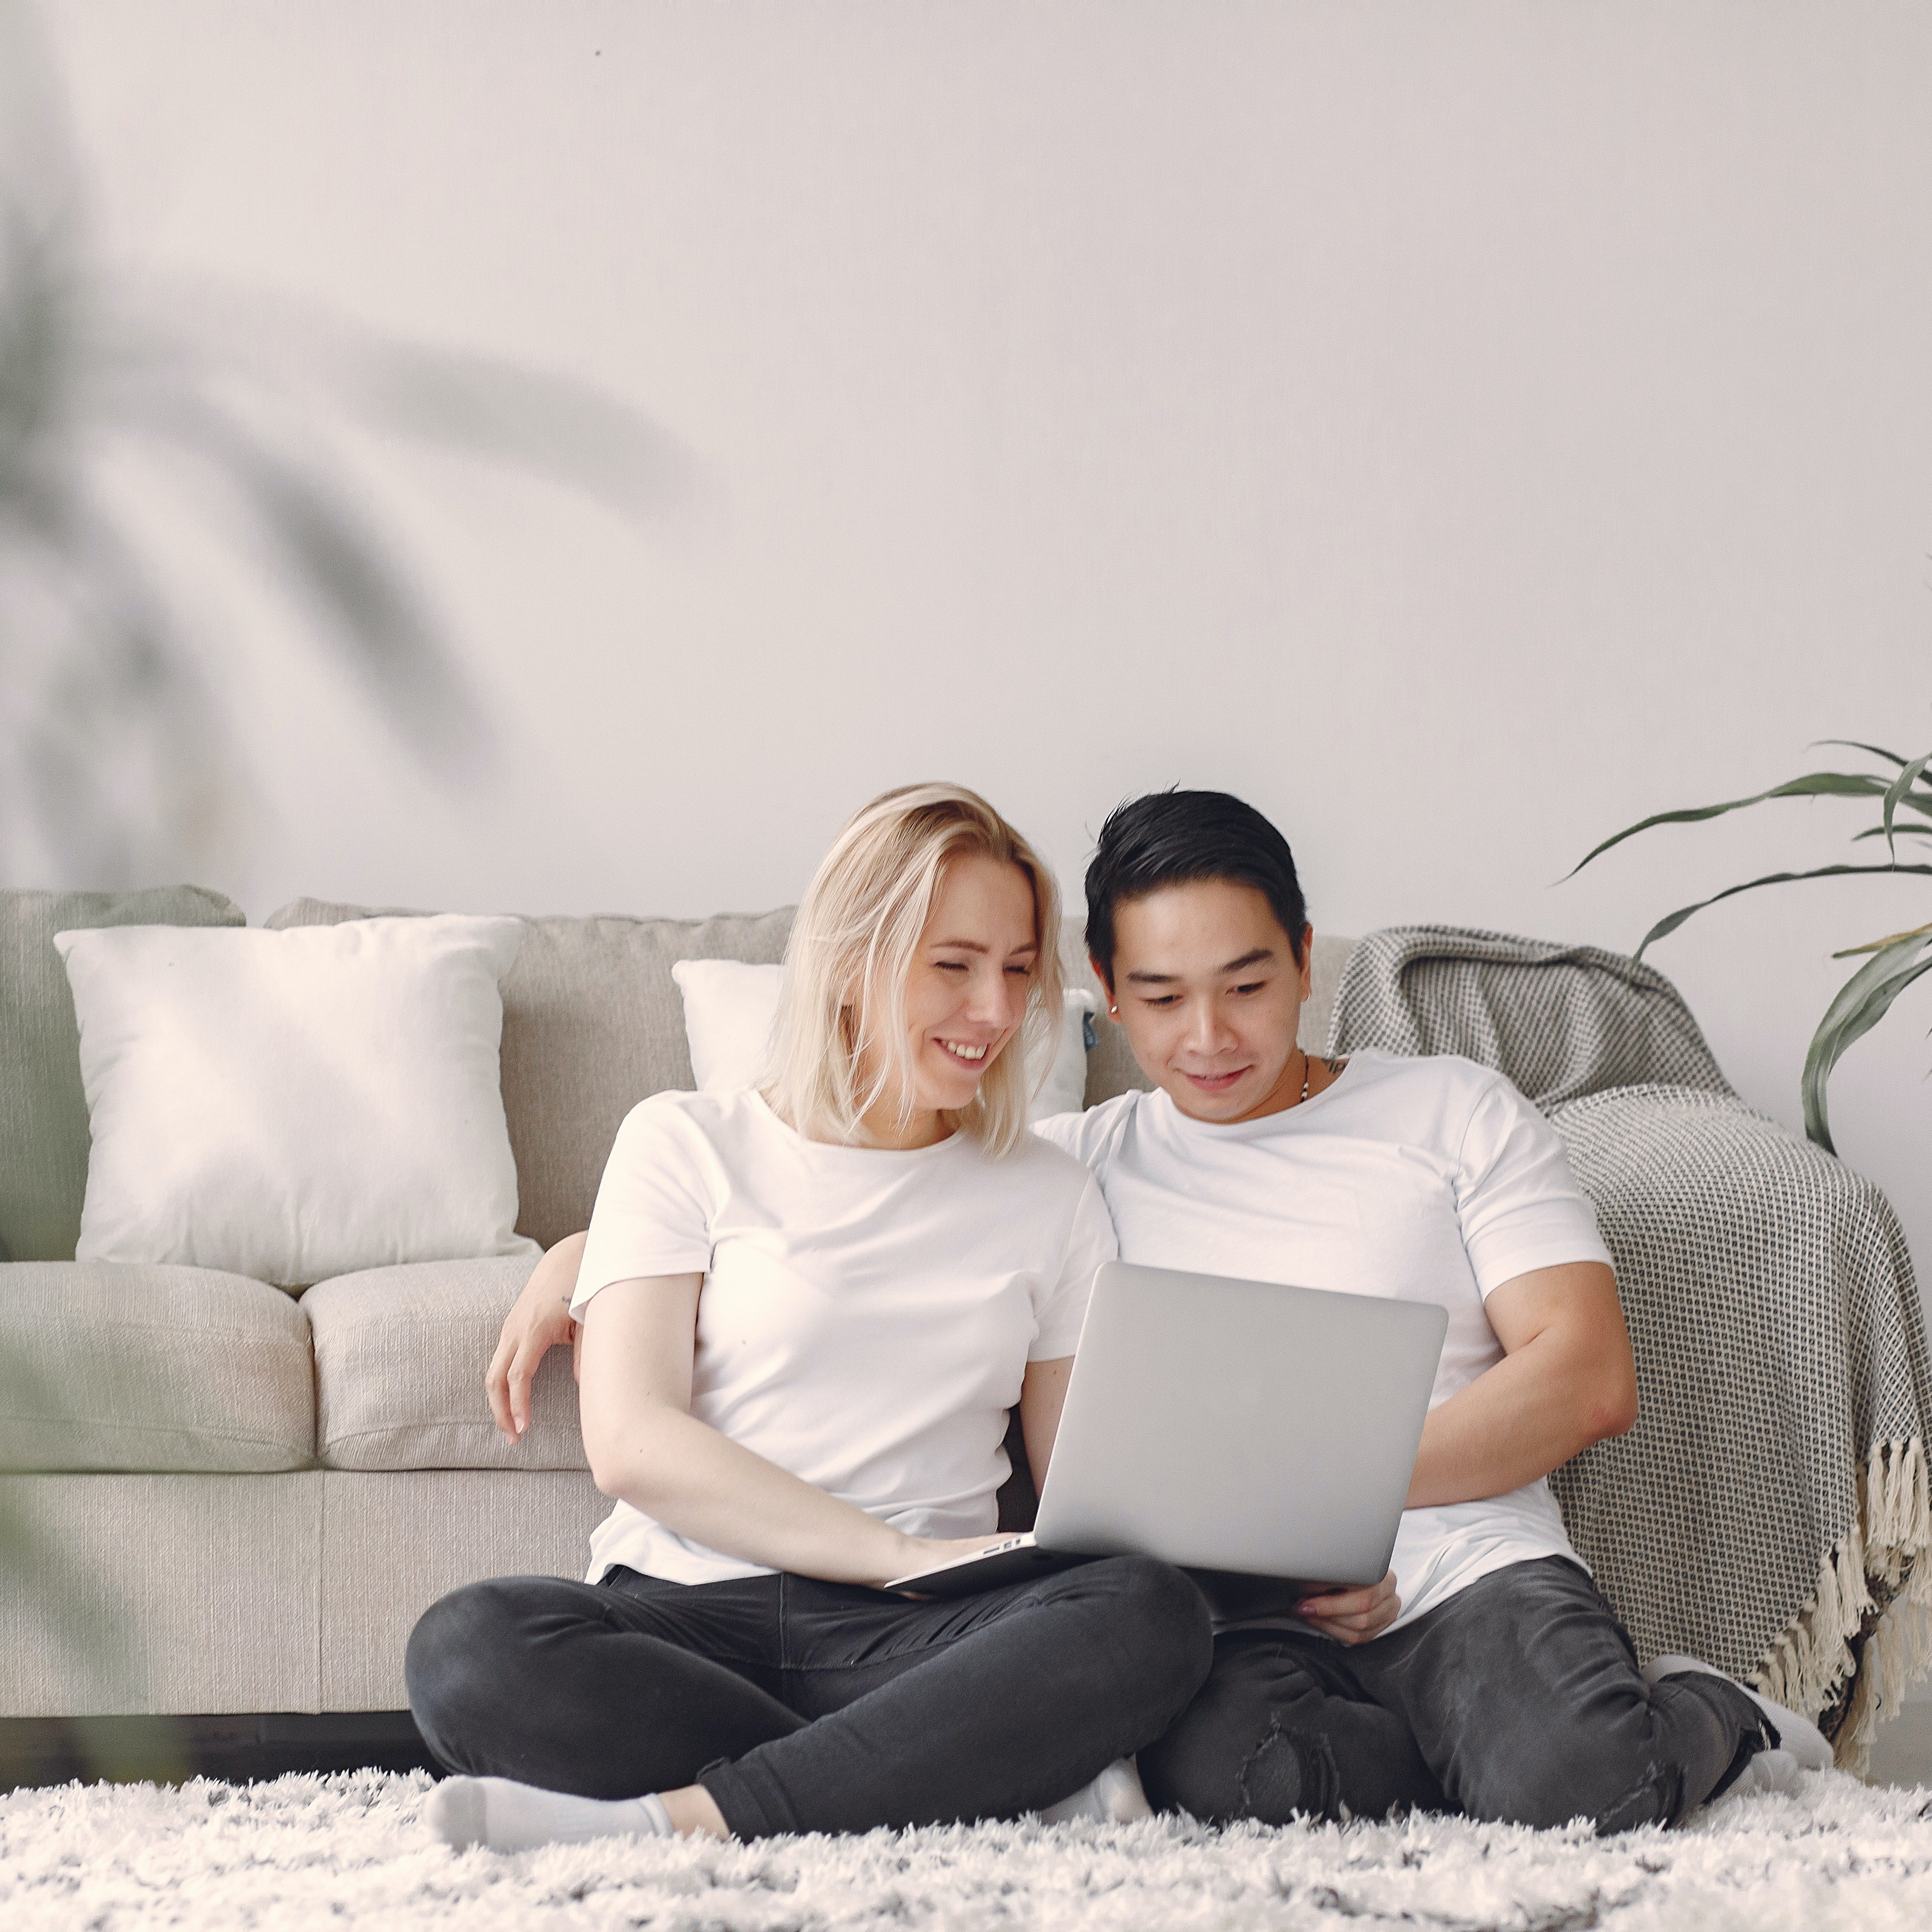 man-and-woman-in-white-crew-neck-t-shirt-sitting-on-a-rug-3912434